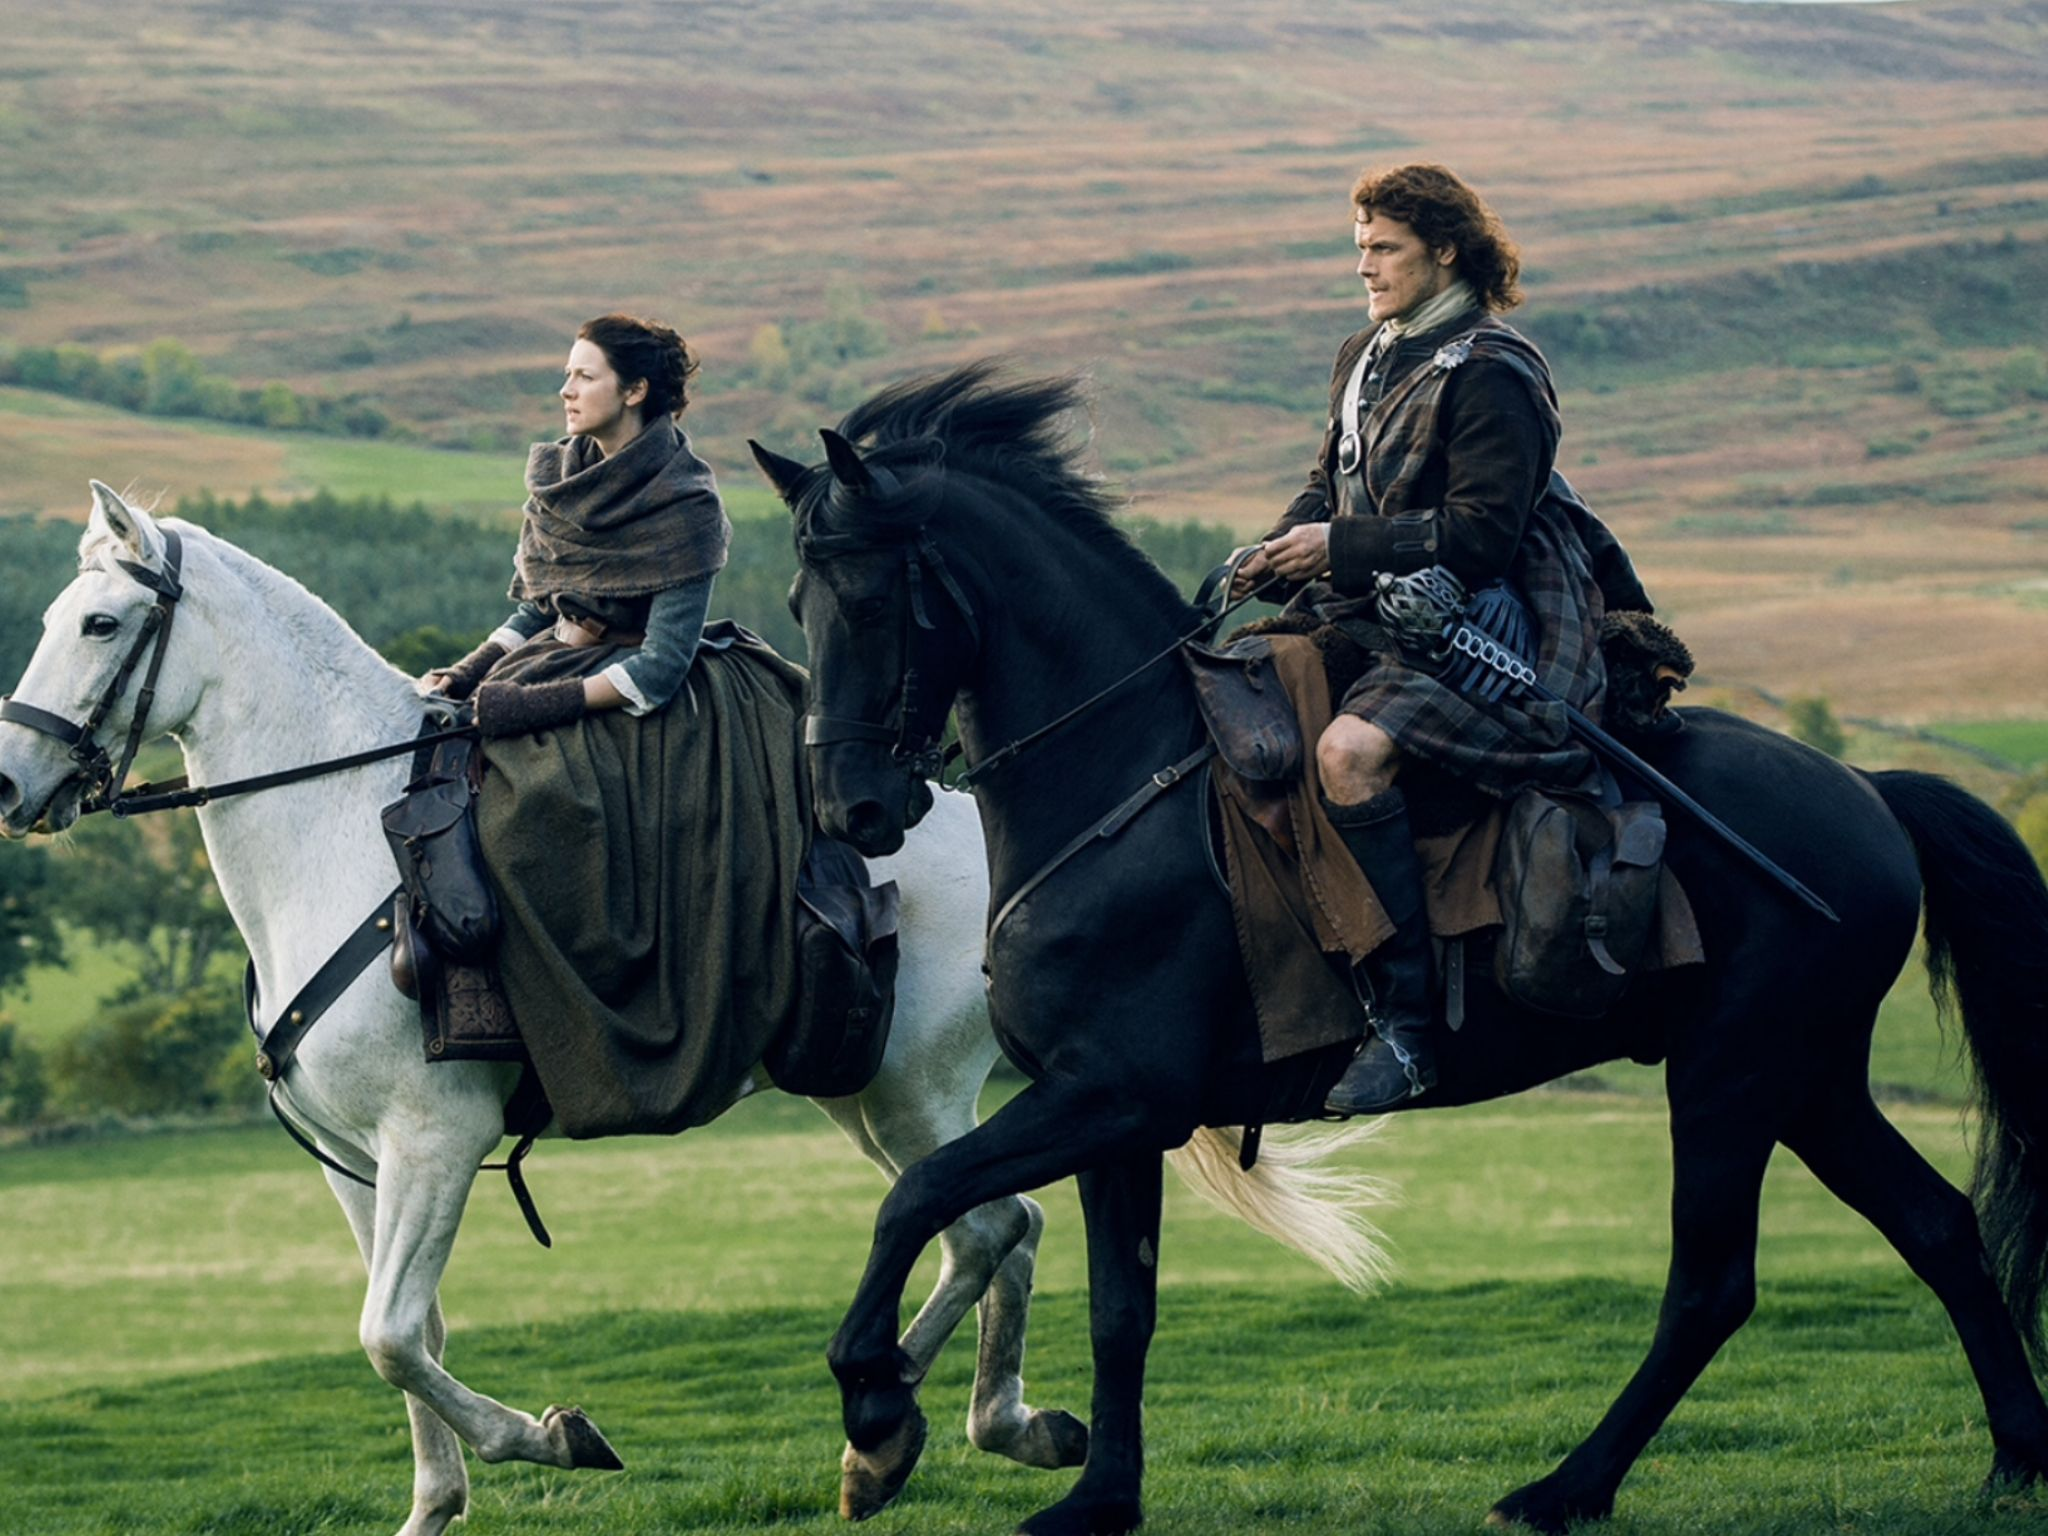 Majestic on their horses